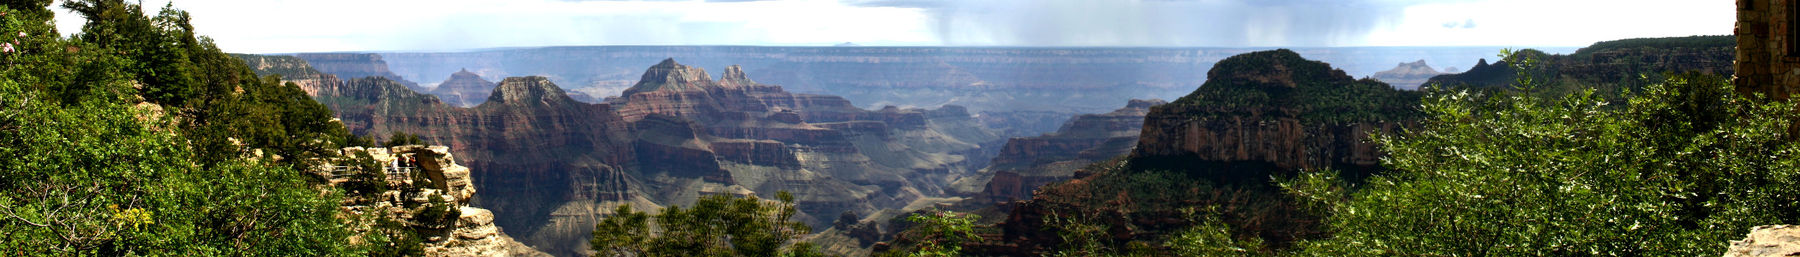 Grand Canyon National Park in Arizona, United States of America